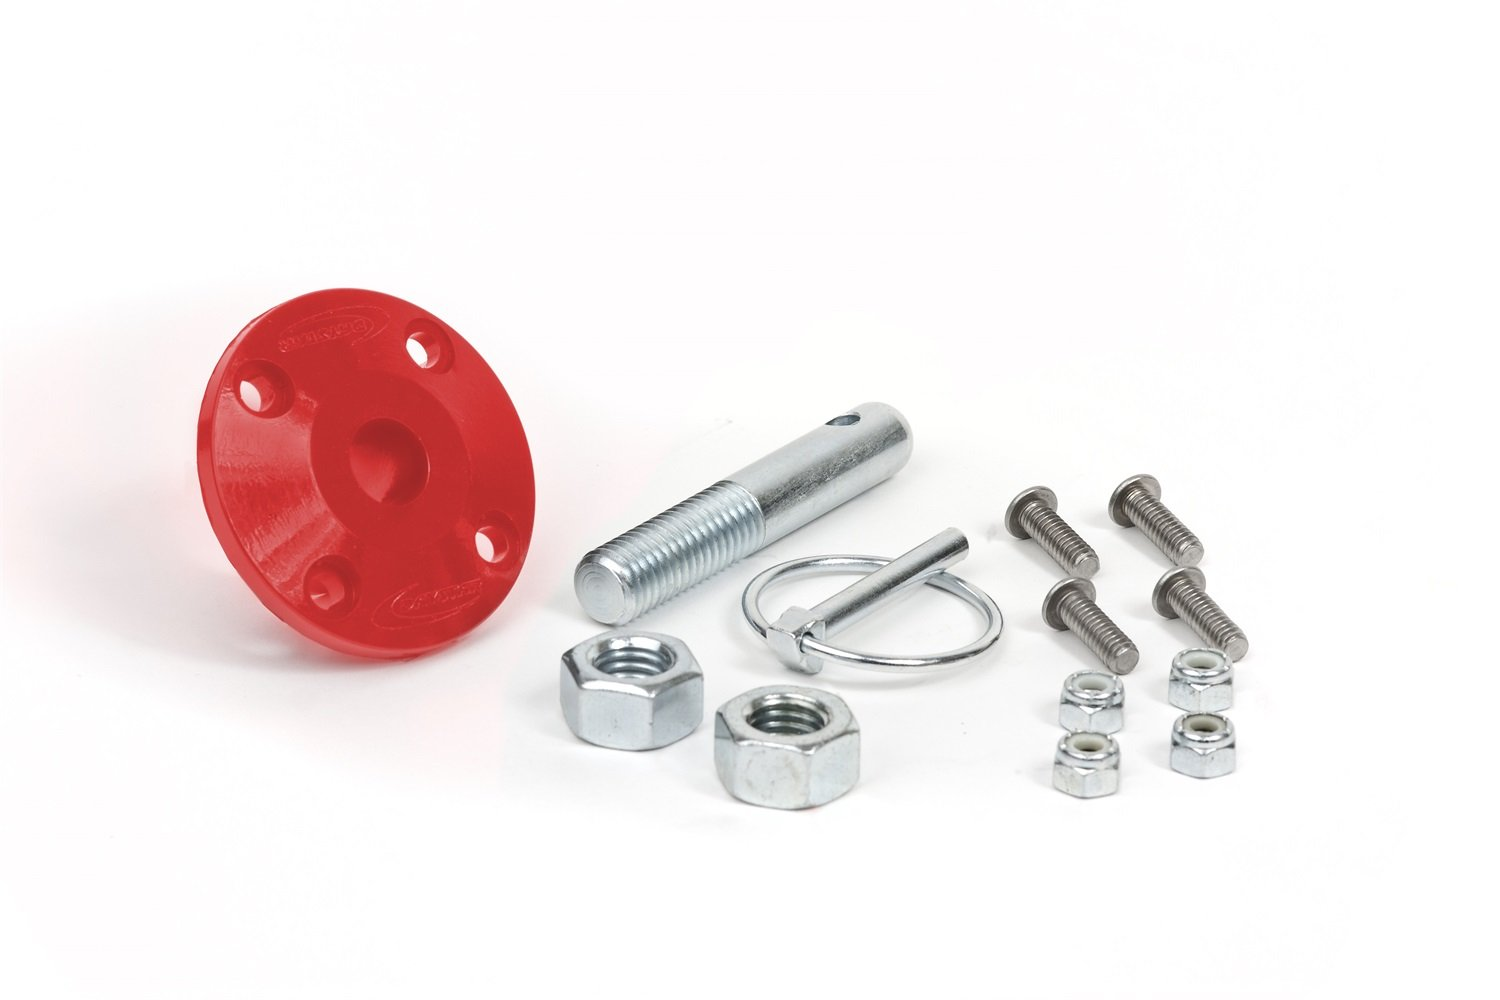 Pin Single Spring Clip Red Universal Hood Pin Kit KU71104RE Daystar and Related Hardware Made in America fits all makes and models 2//4WD Includes Polyurethane Isolator